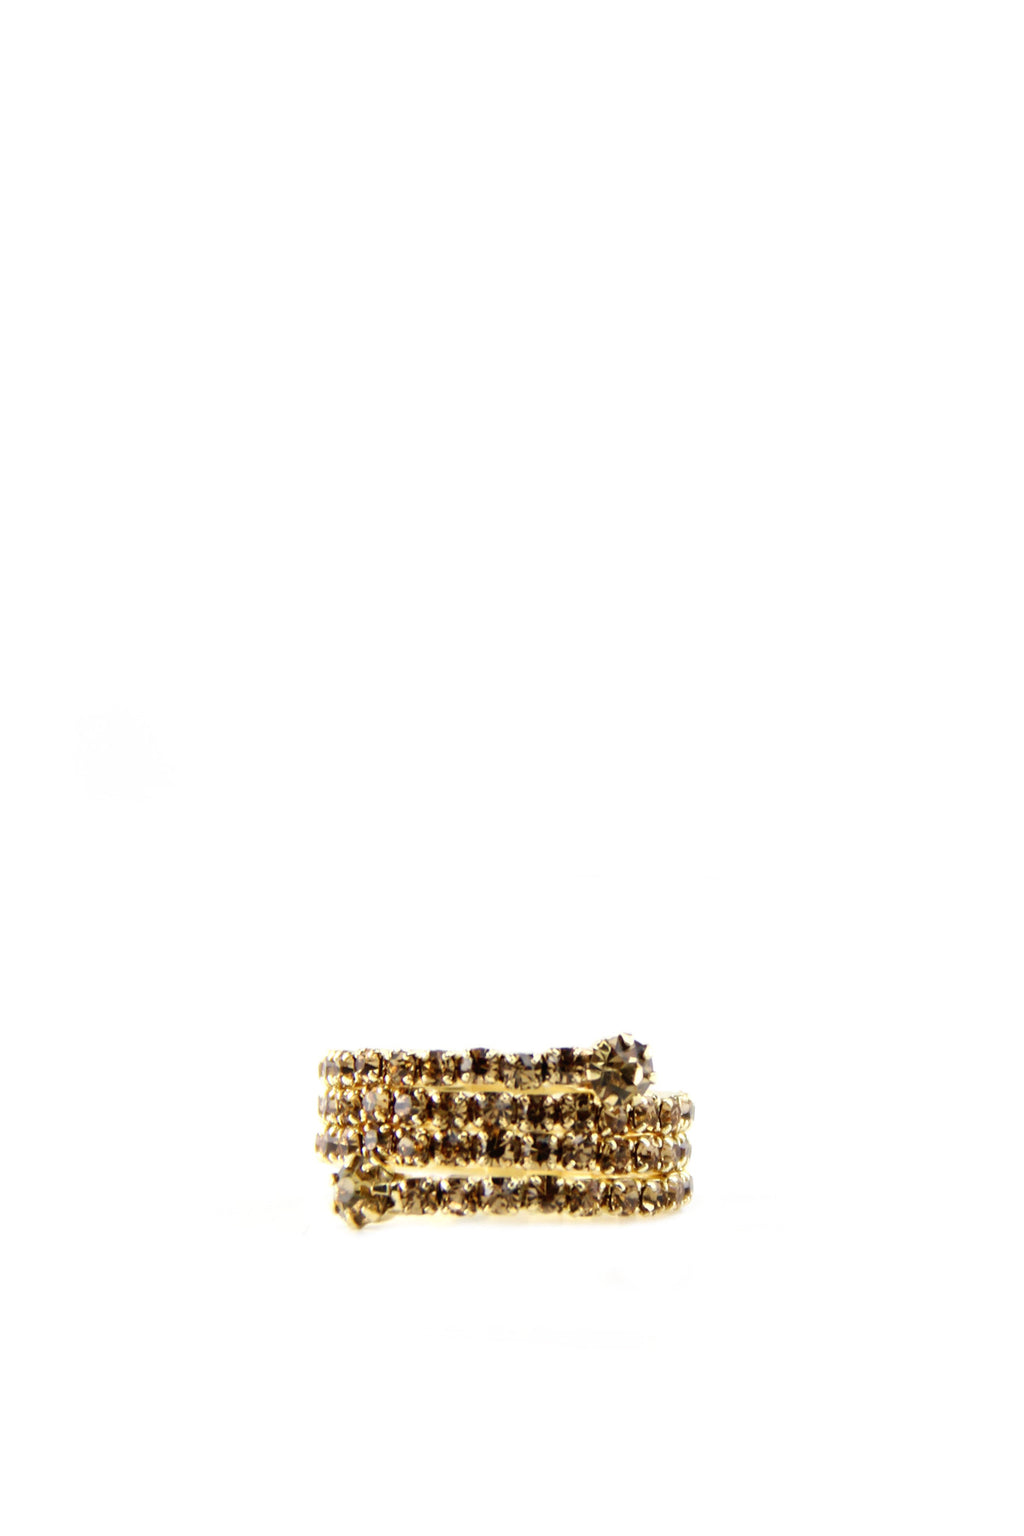 Spiral Wrap Diamond Ring - Yellow Gold - Haute & Rebellious